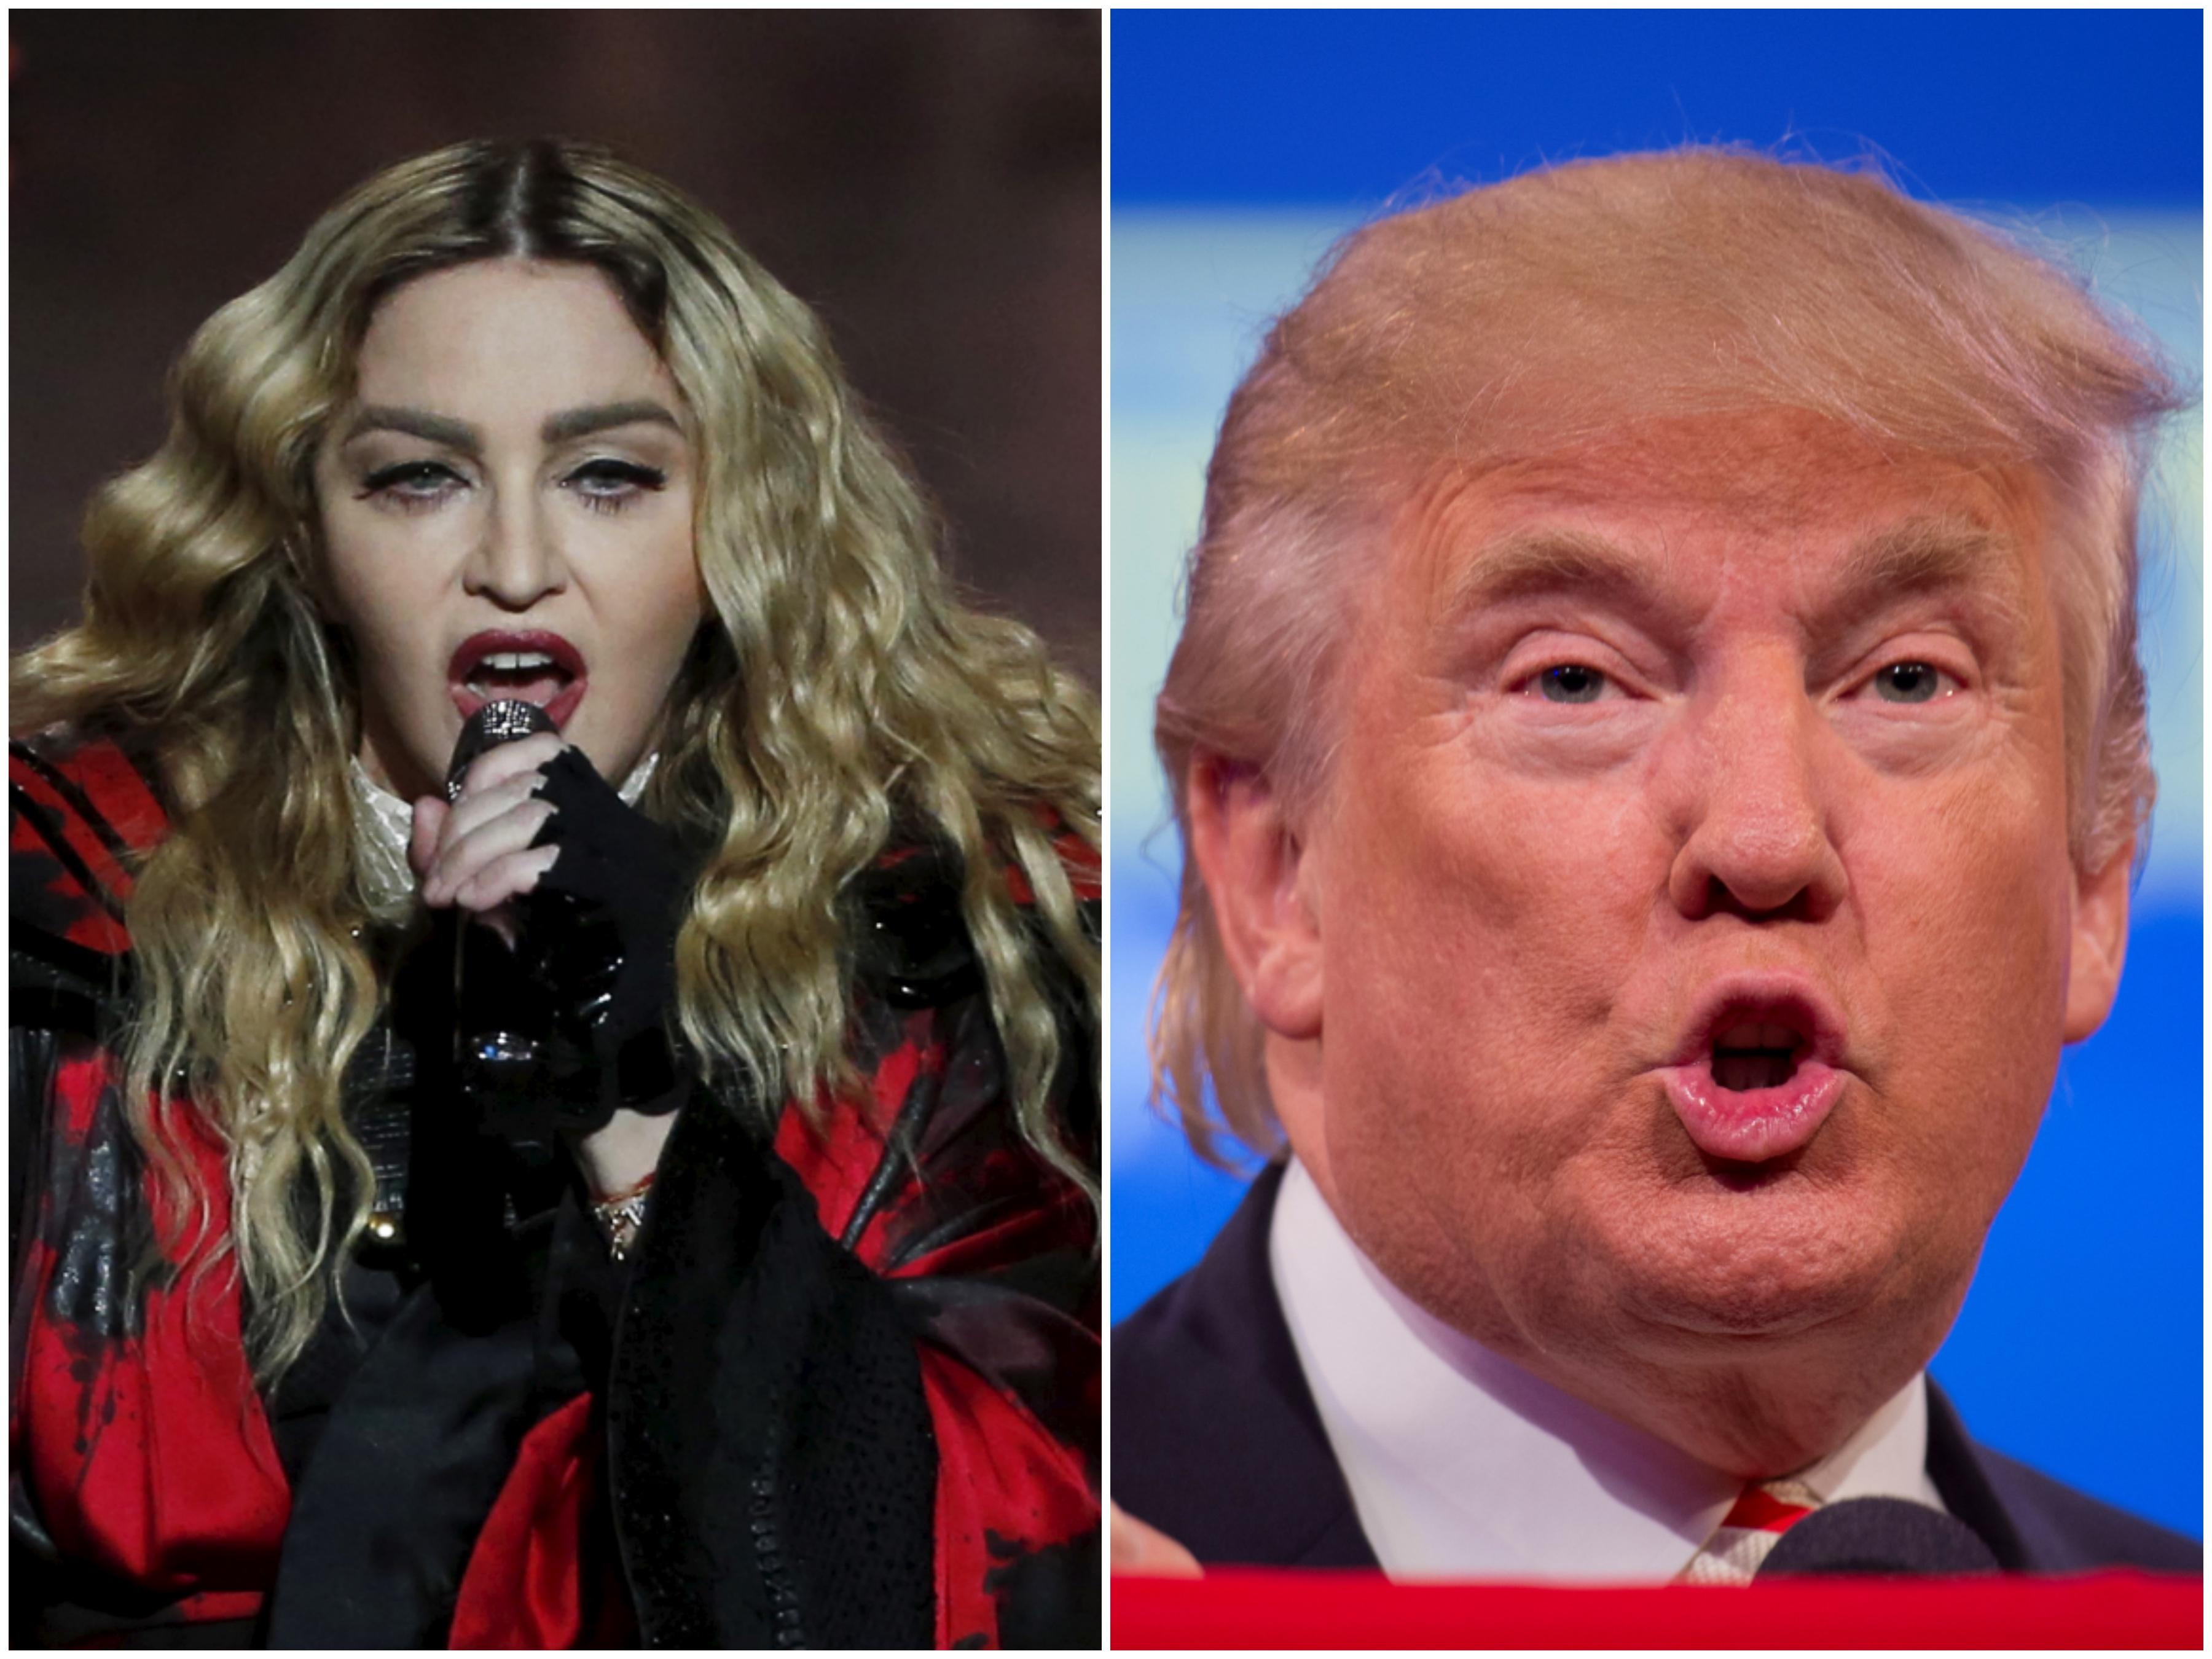 Madonna and Donald Trump